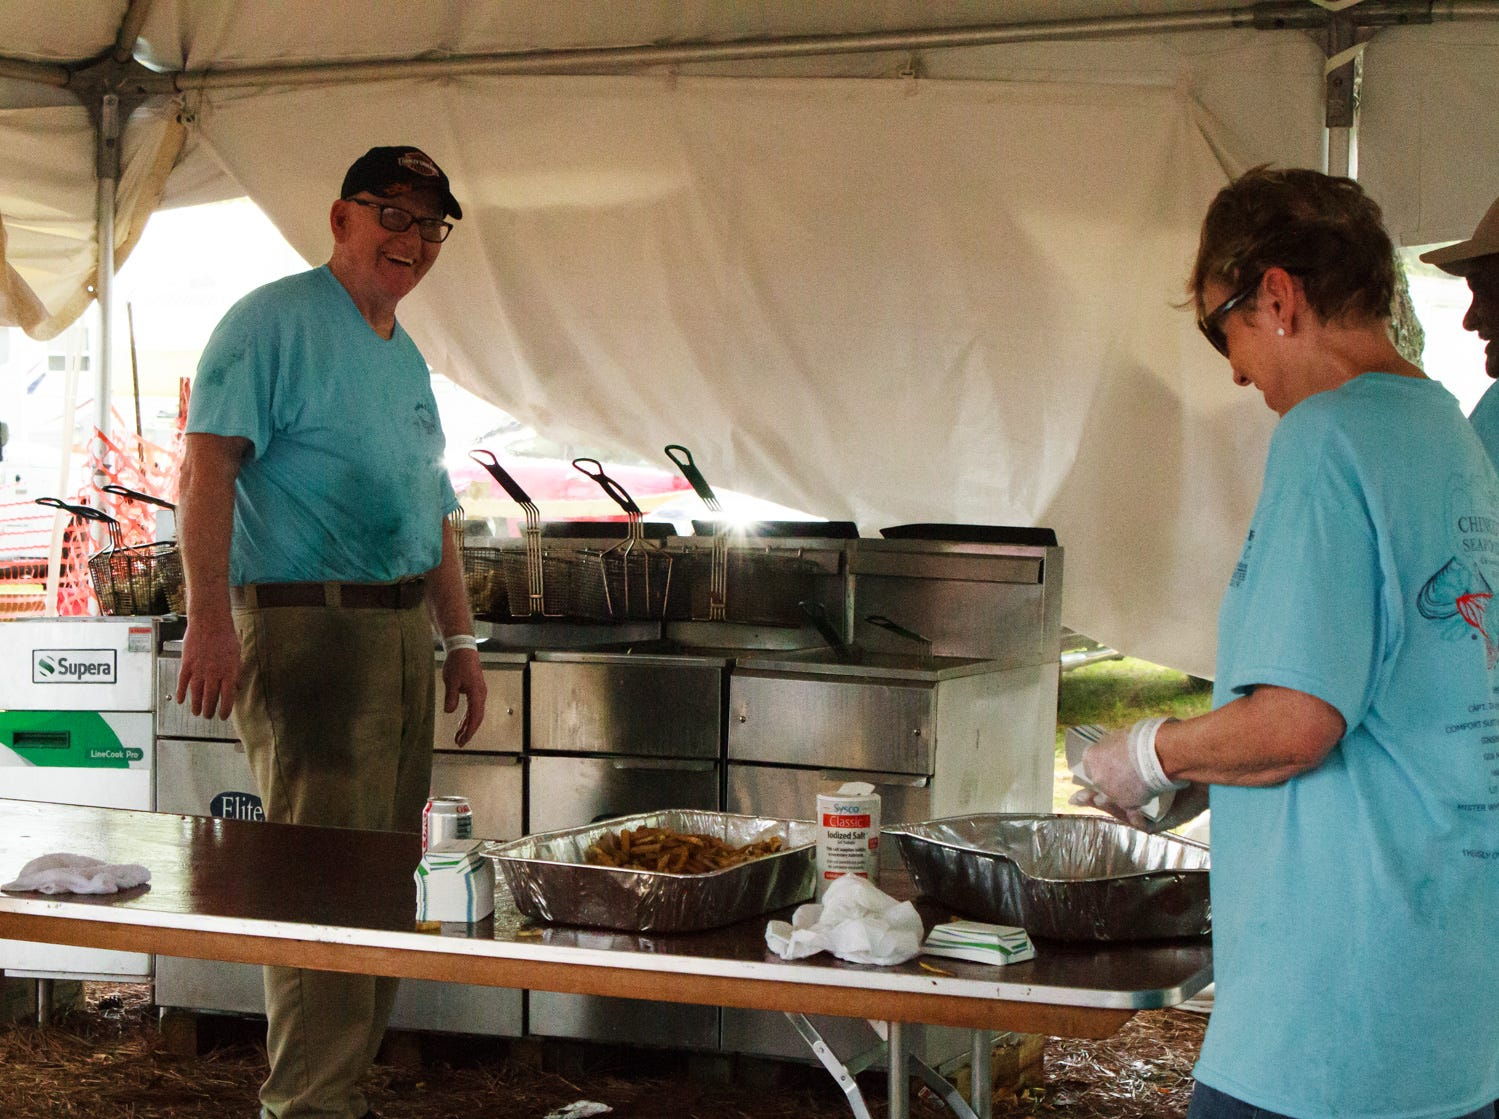 Charlene Jacob of Accomac, VA and Ernest Ruediger of Onancock, VA take time inbetween preparing French fries to share jokes on Saturday, May 4, 2019 at the Chincoteague Seafood Festival in Chincoteague, VA.